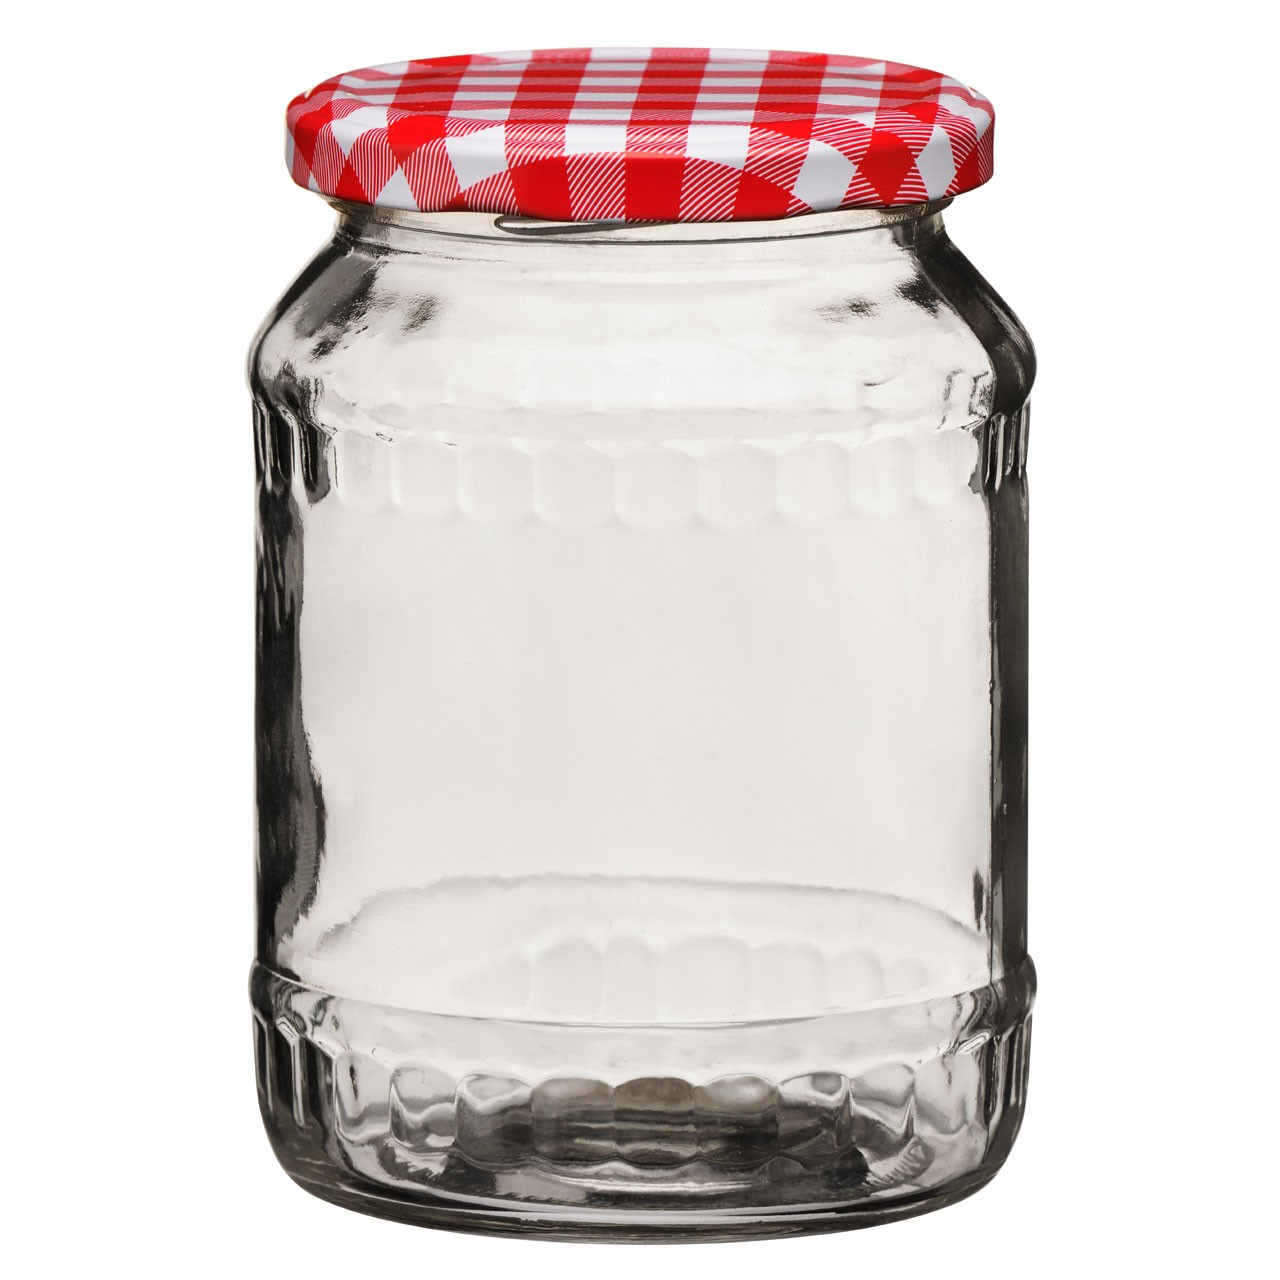 Storage Jar, Clear Glass/Red Gingham Lid, 630ml